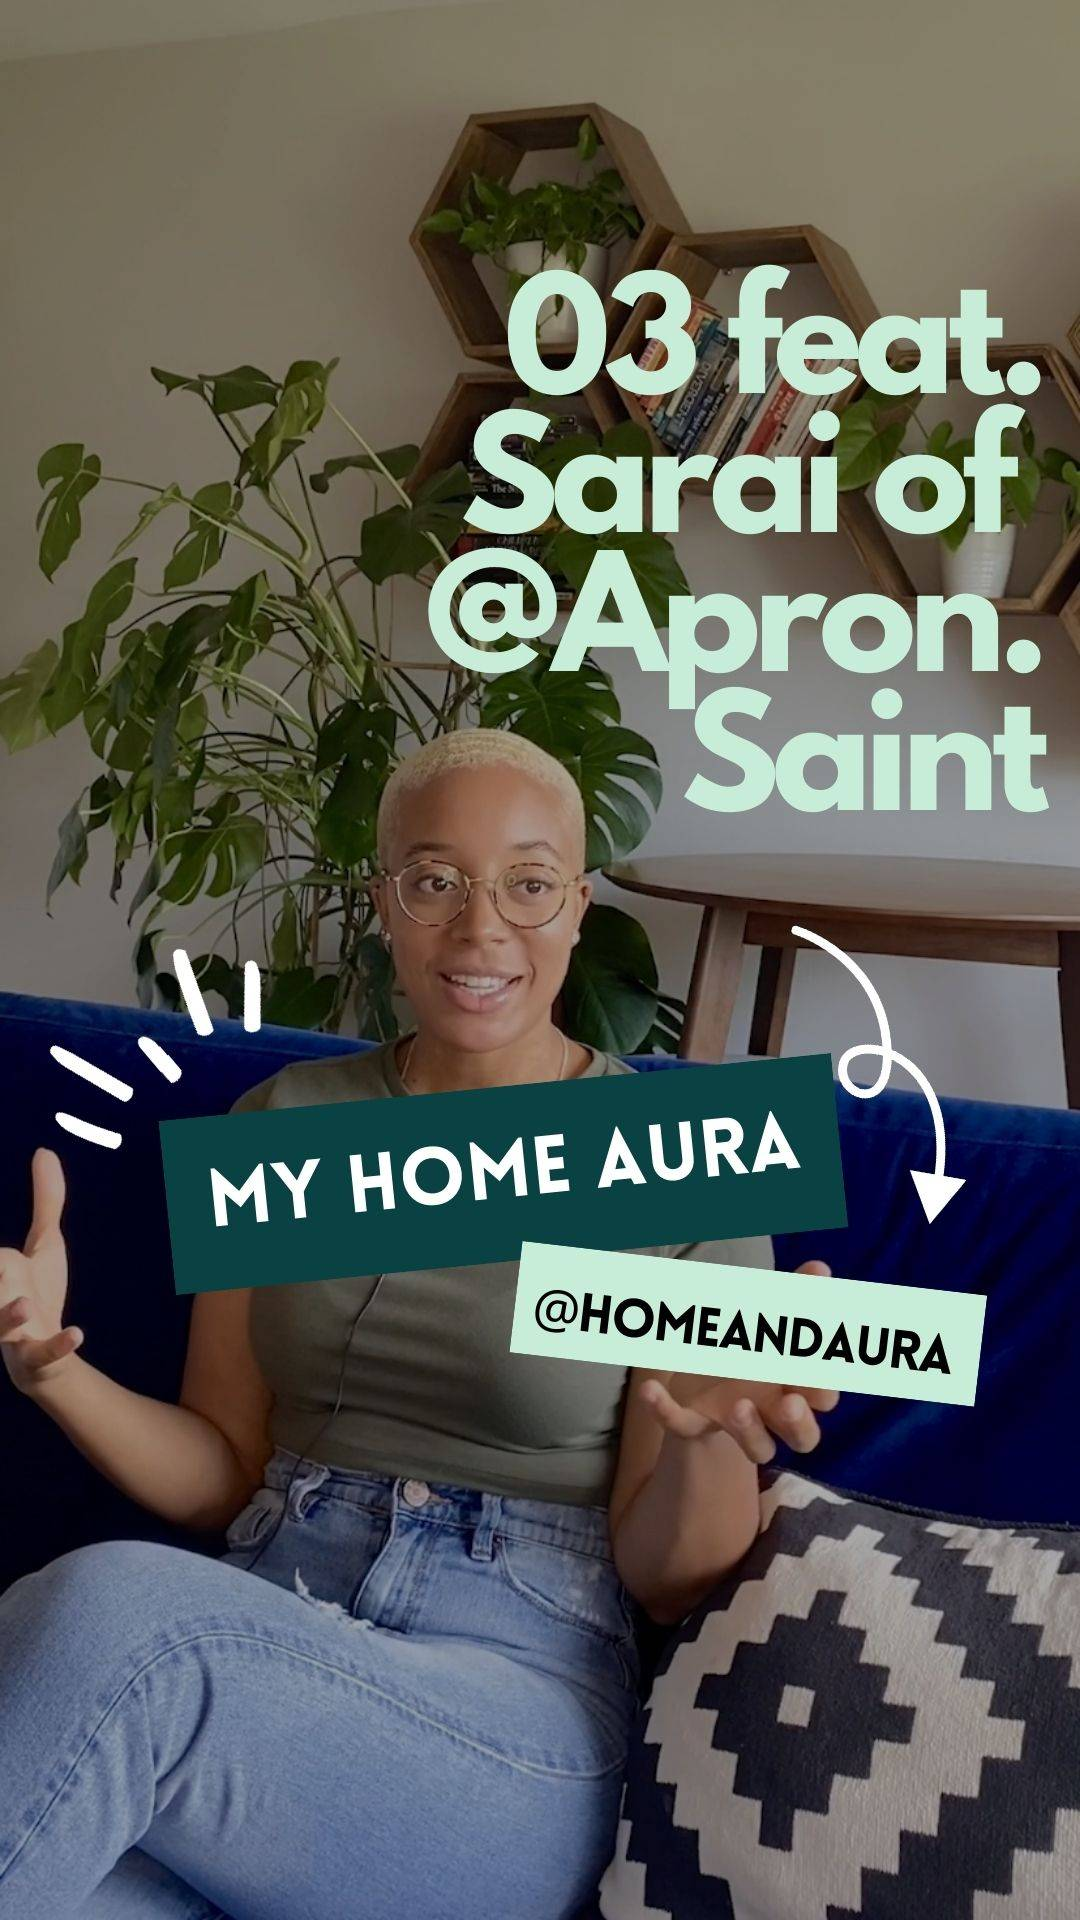 My Home Aura S1E3: Sarai's (Apron Saint) 513 sq ft Washington, DC Condo